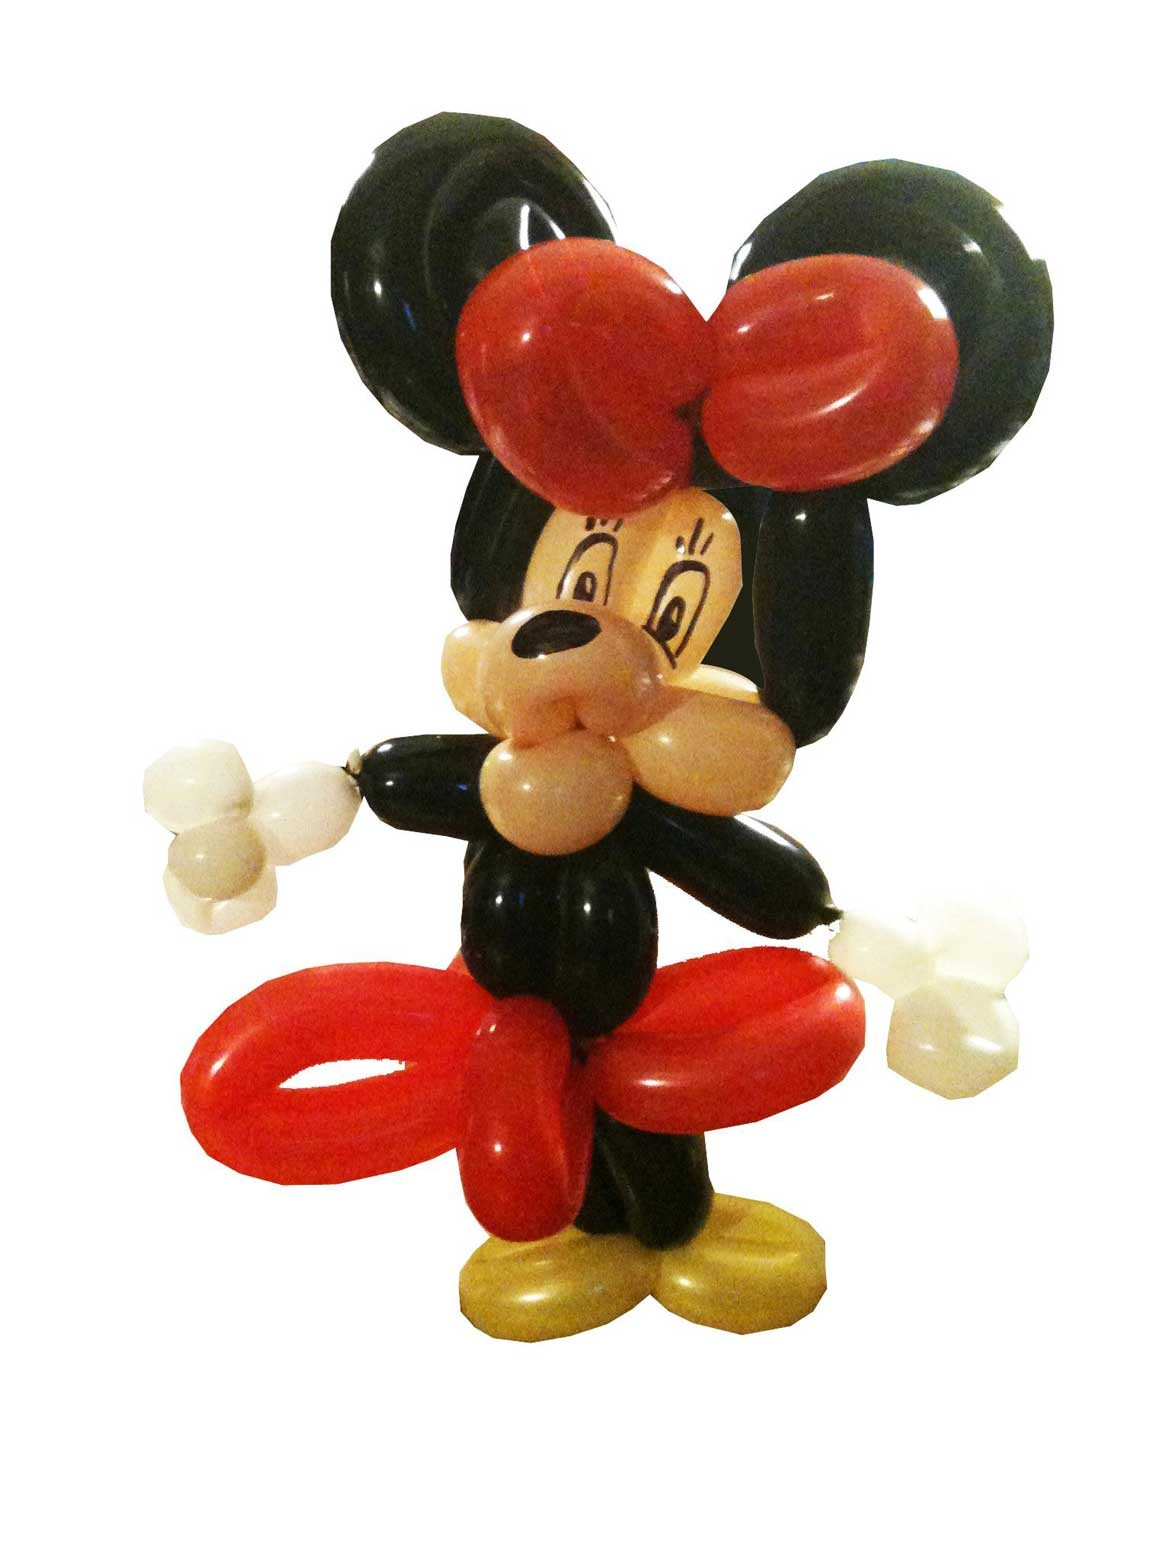 Mickey Mouse made out of 7 balloons